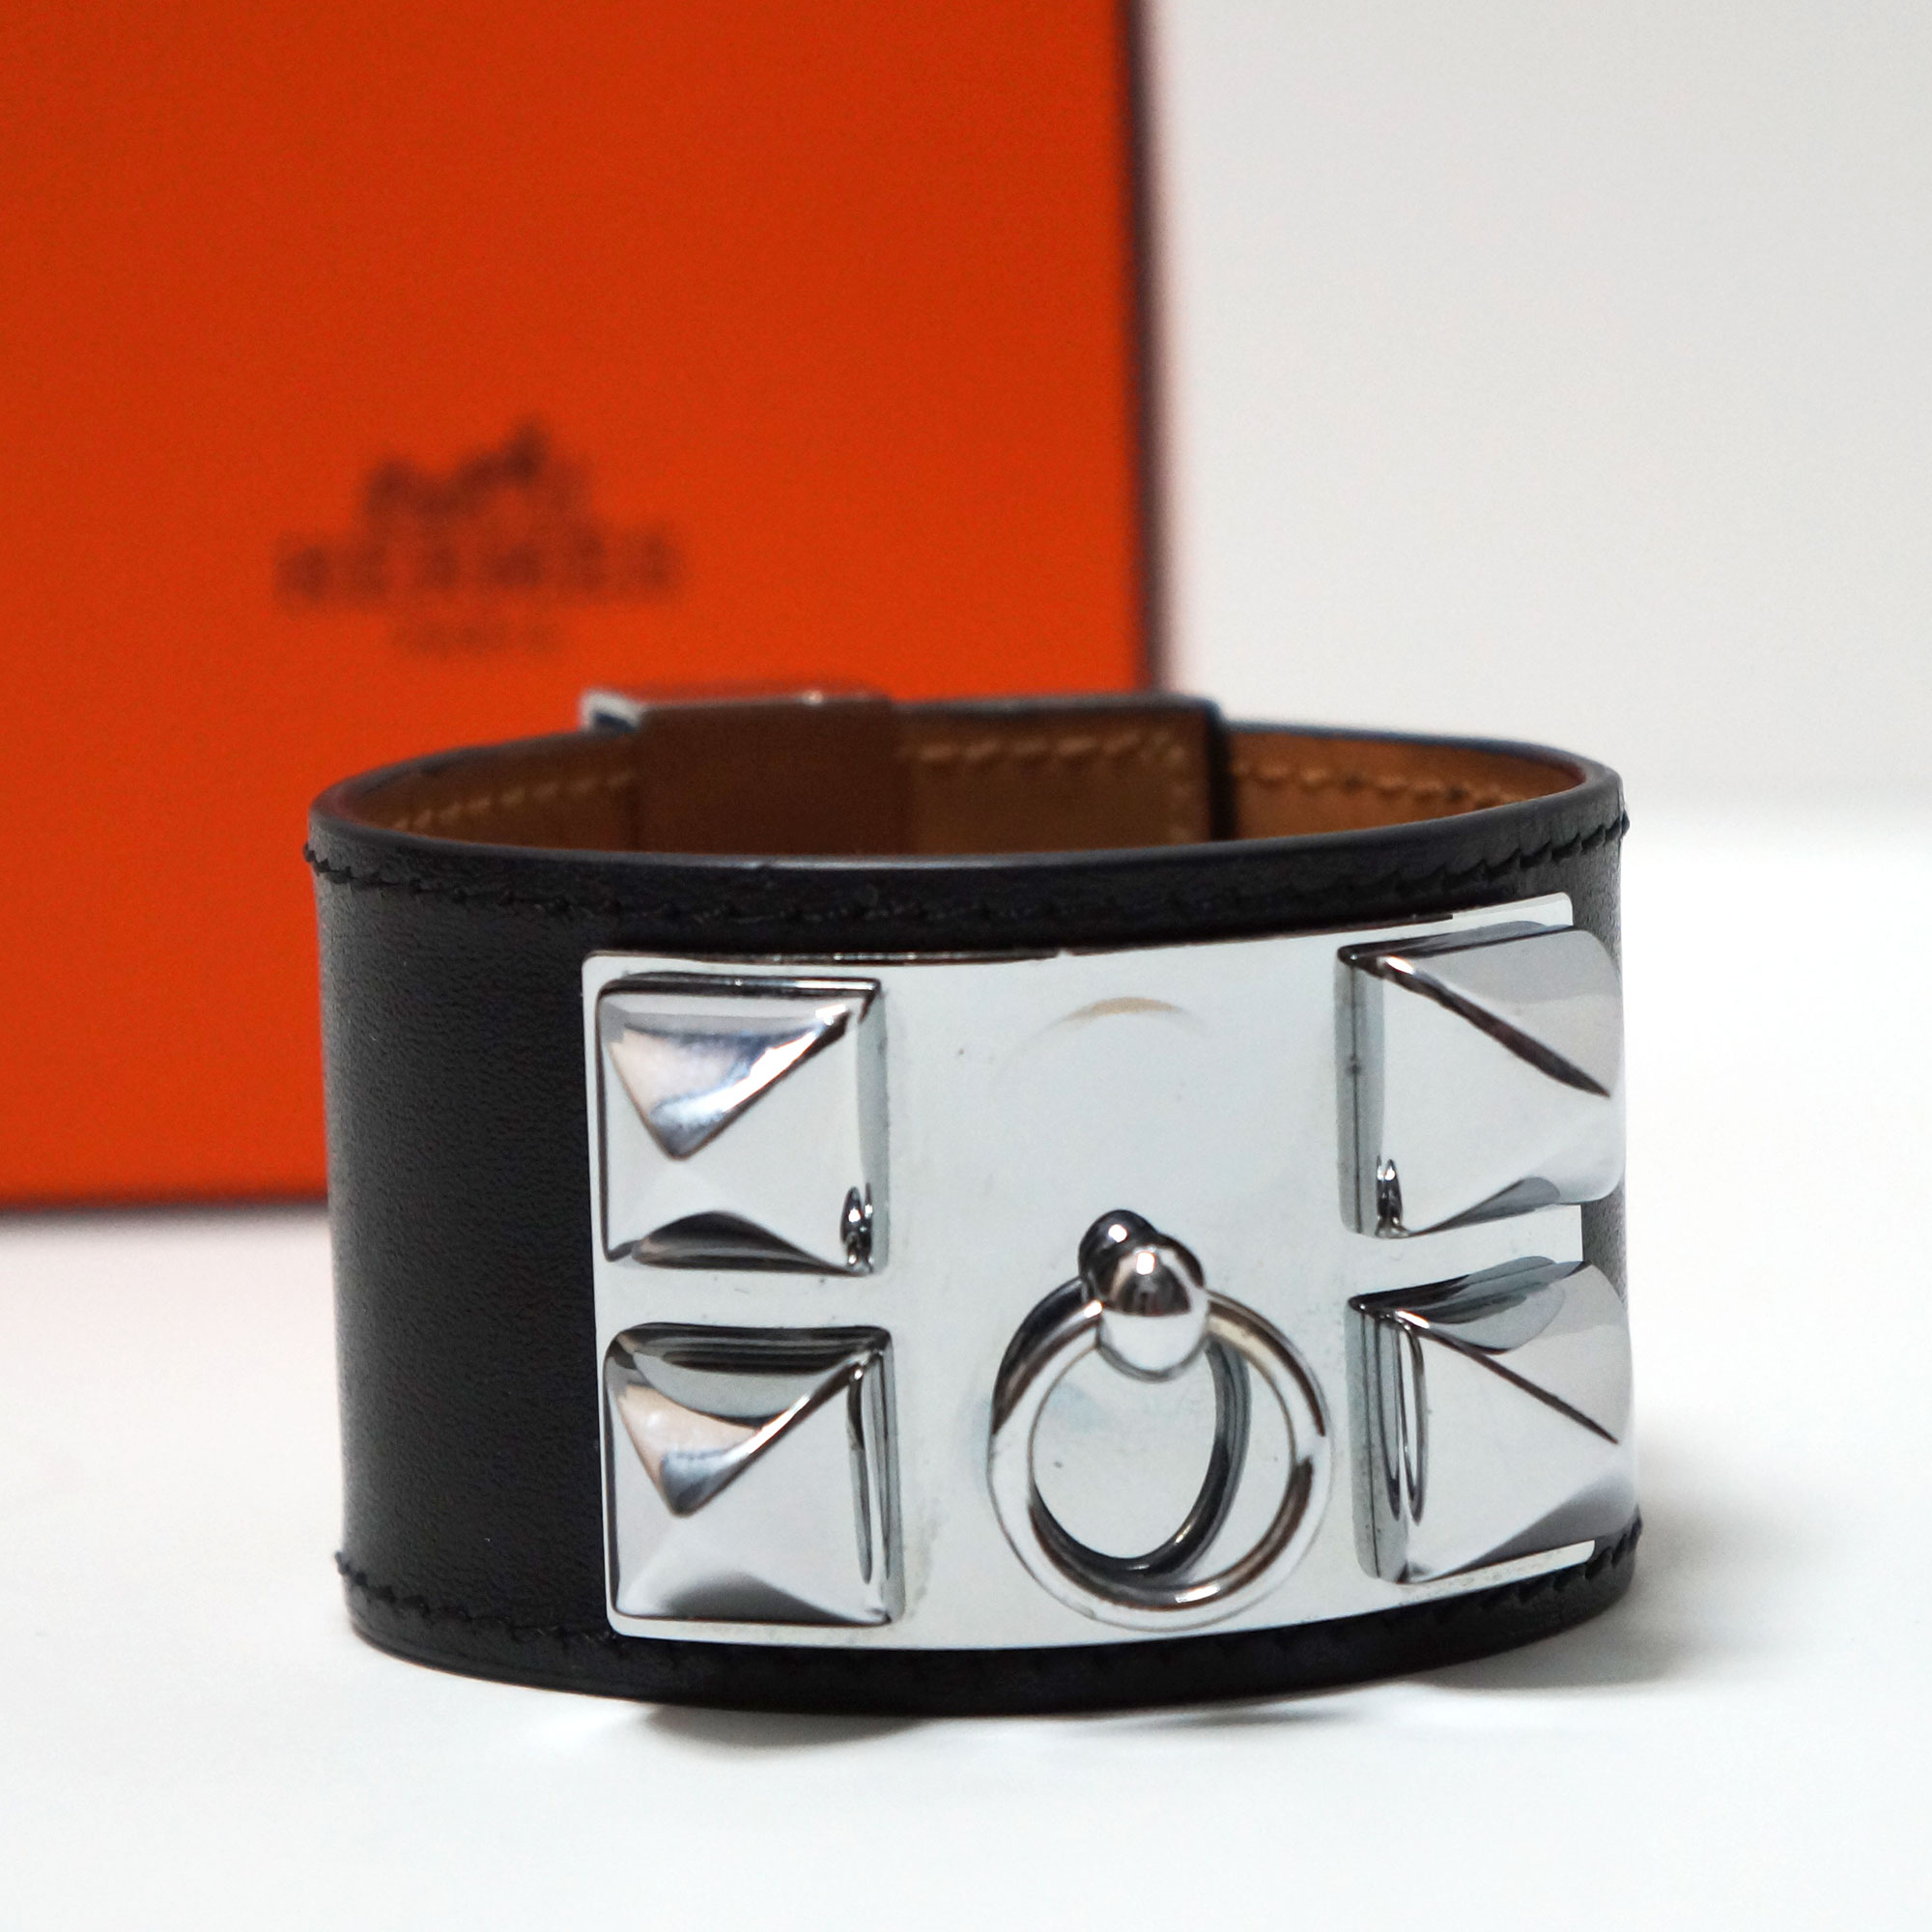 collier de cuff dog plated garderobe products kelly chien silver etoupe hermes swift alligator bracelet